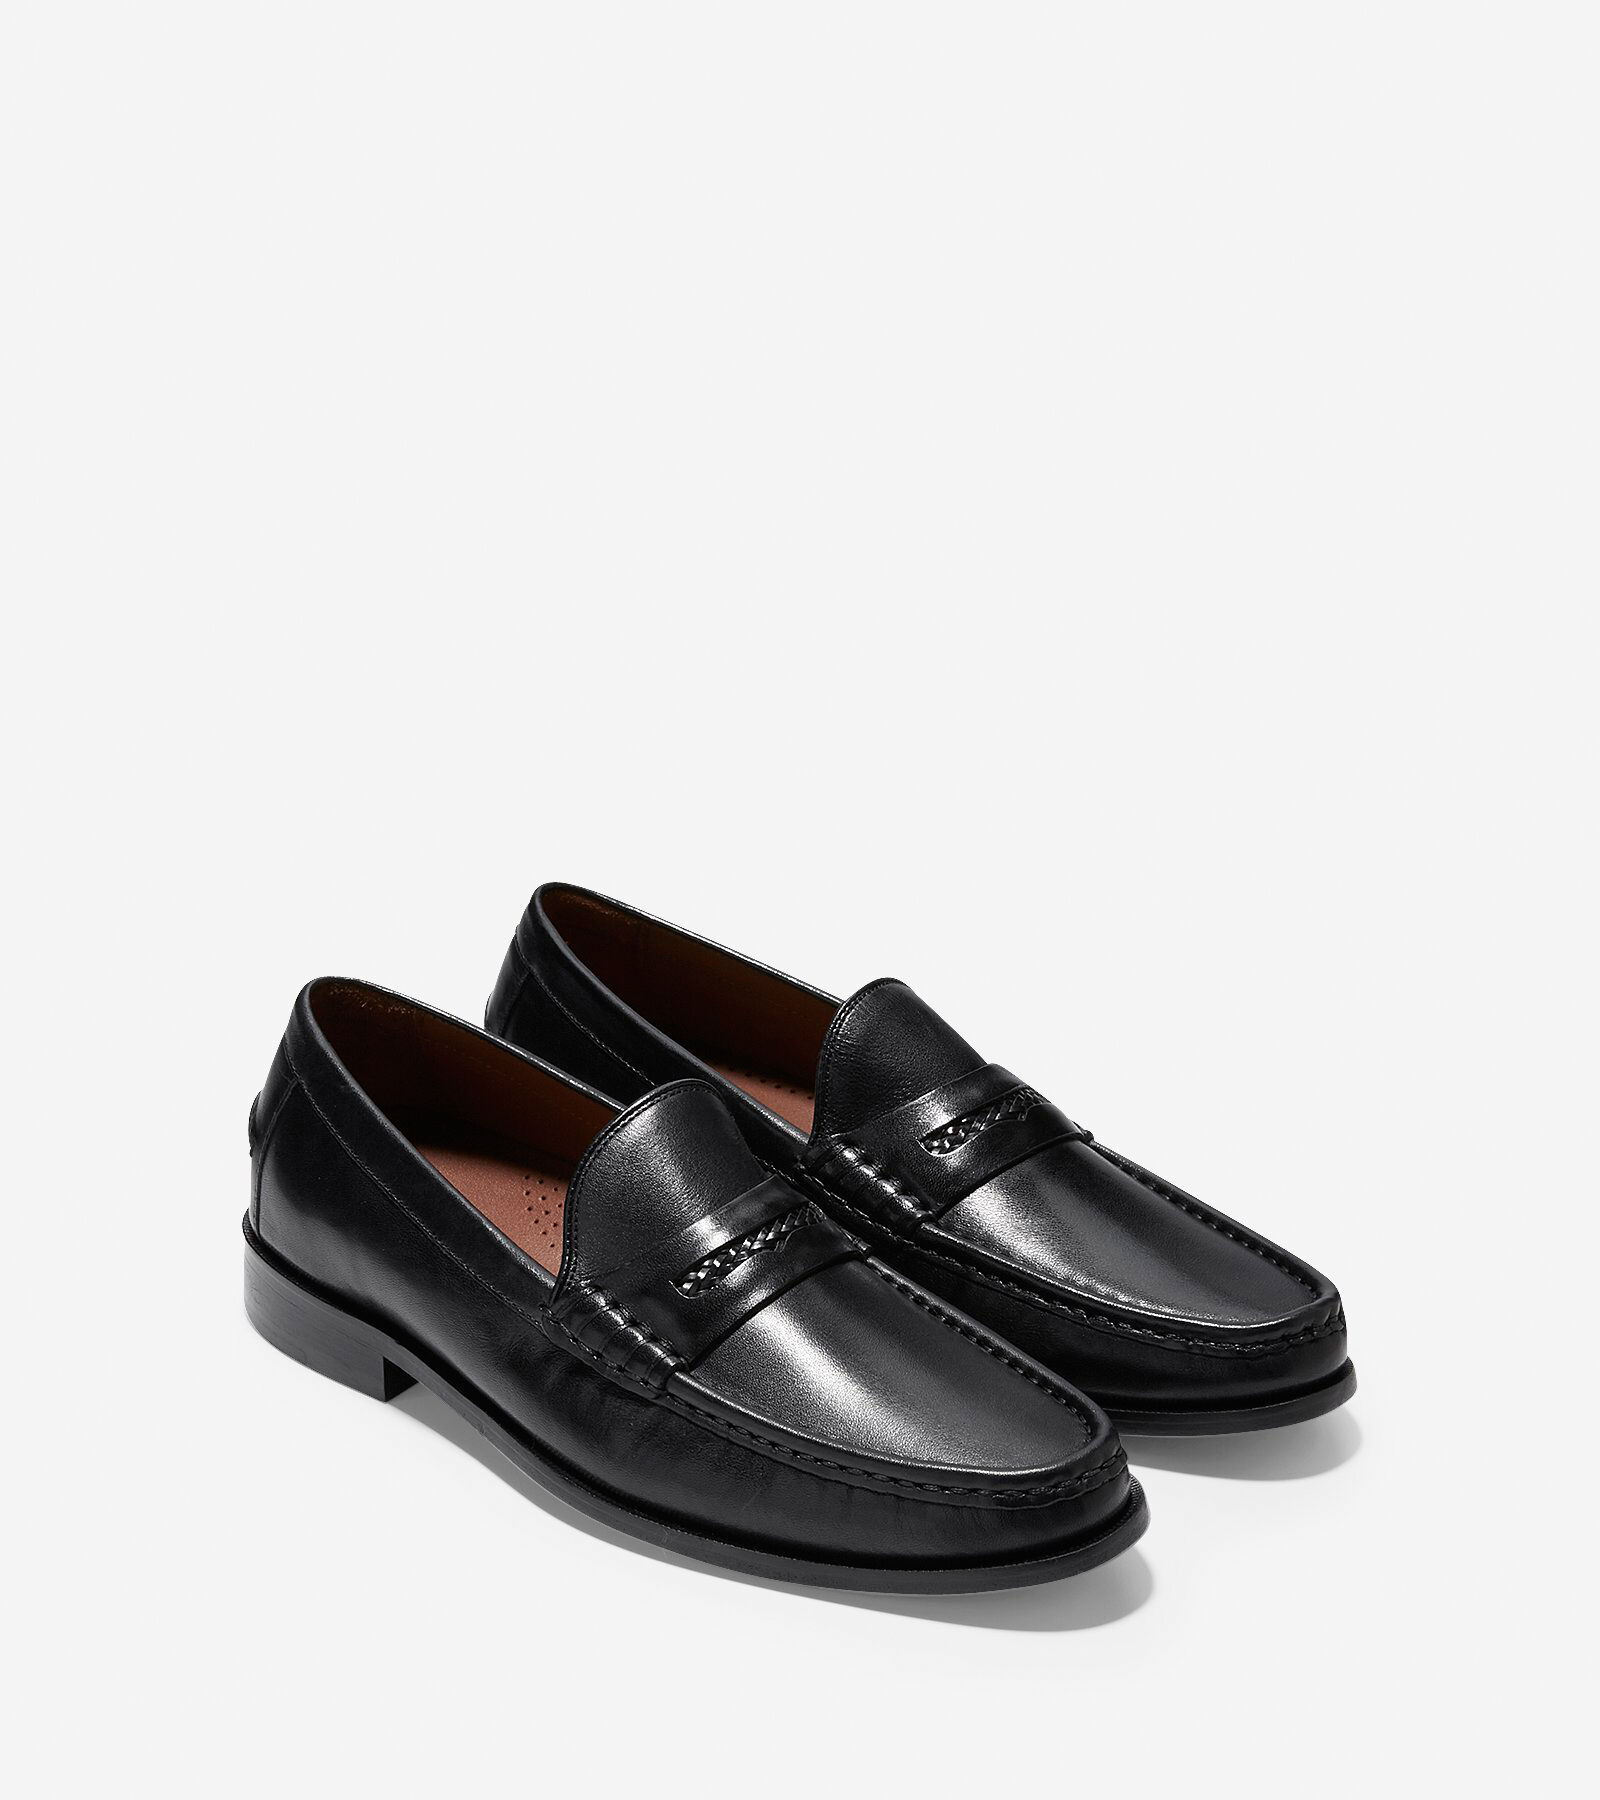 ... Men's Pinch Gotham Penny Loafer; Men's Pinch Gotham Penny Loafer. # colehaan